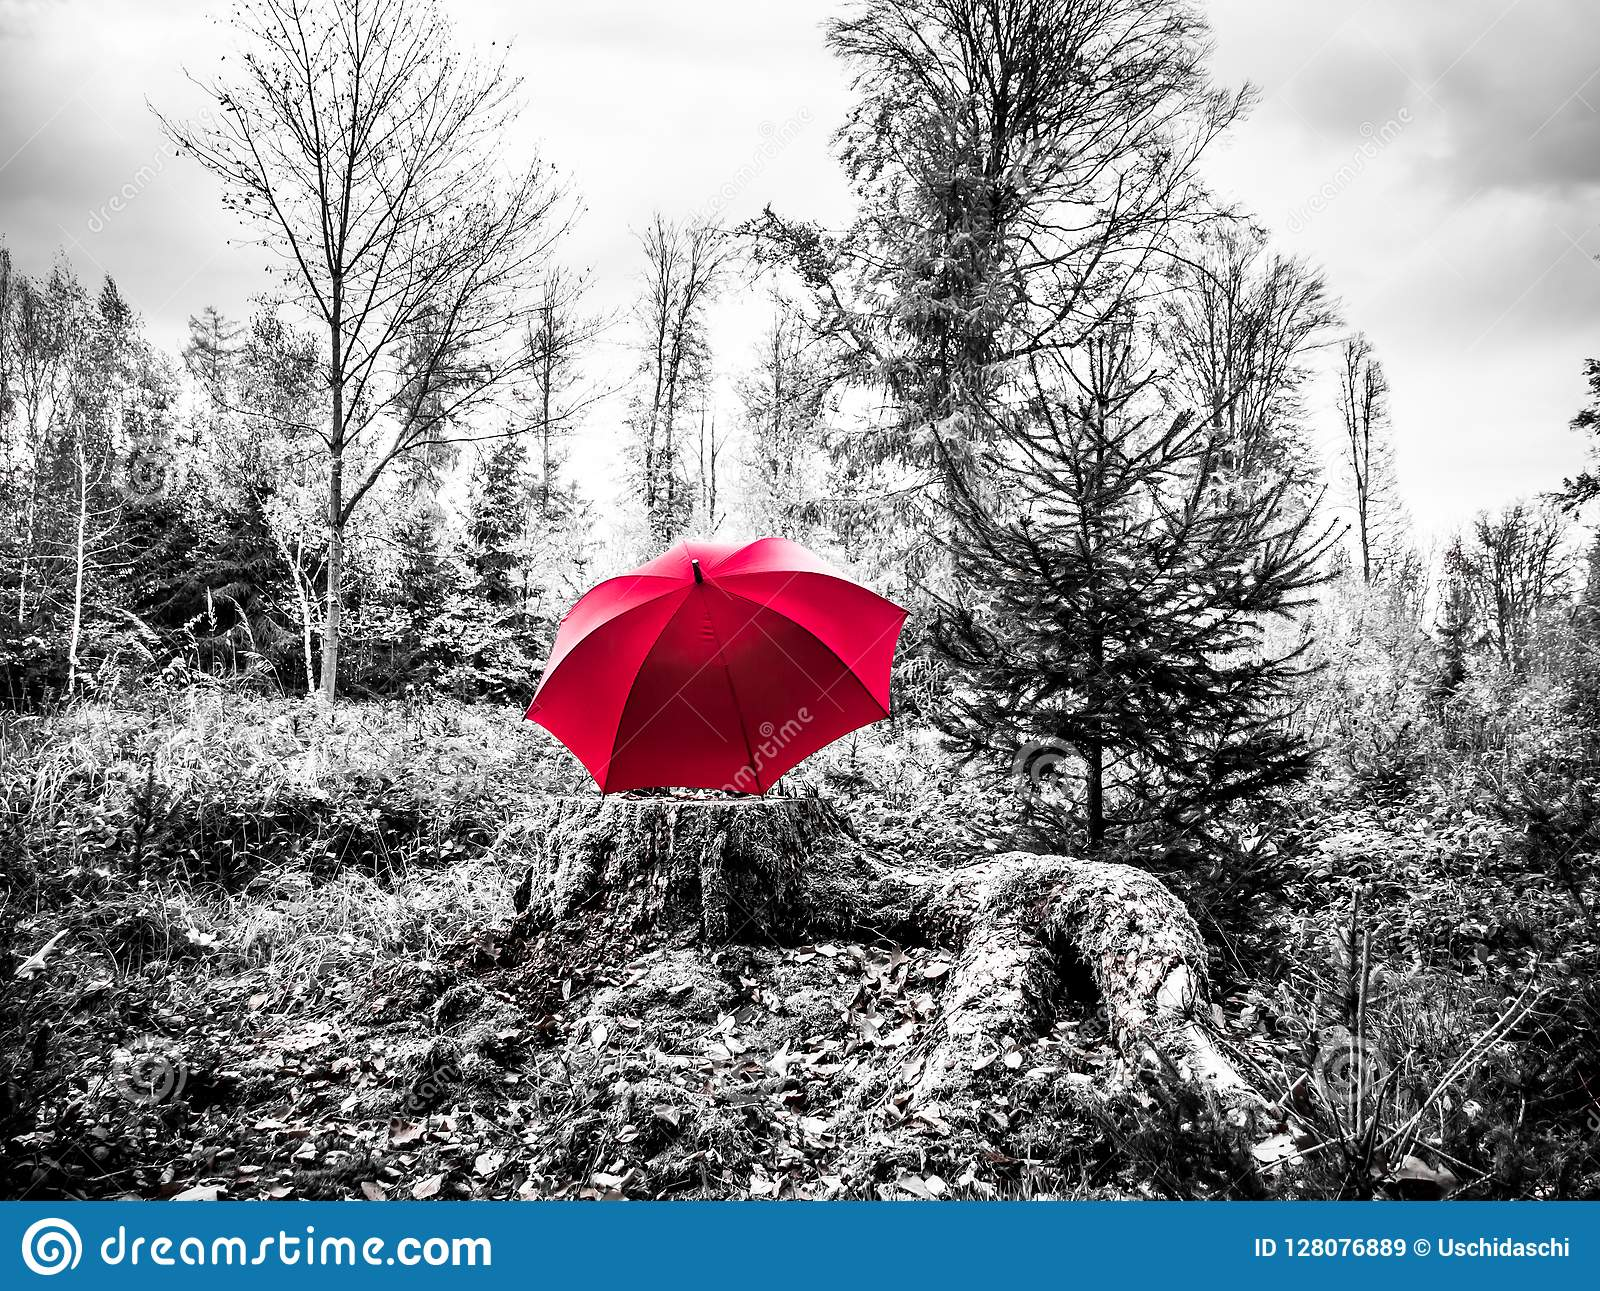 Black And White Image Of A Red Umbrella On A Trunk Stock Image